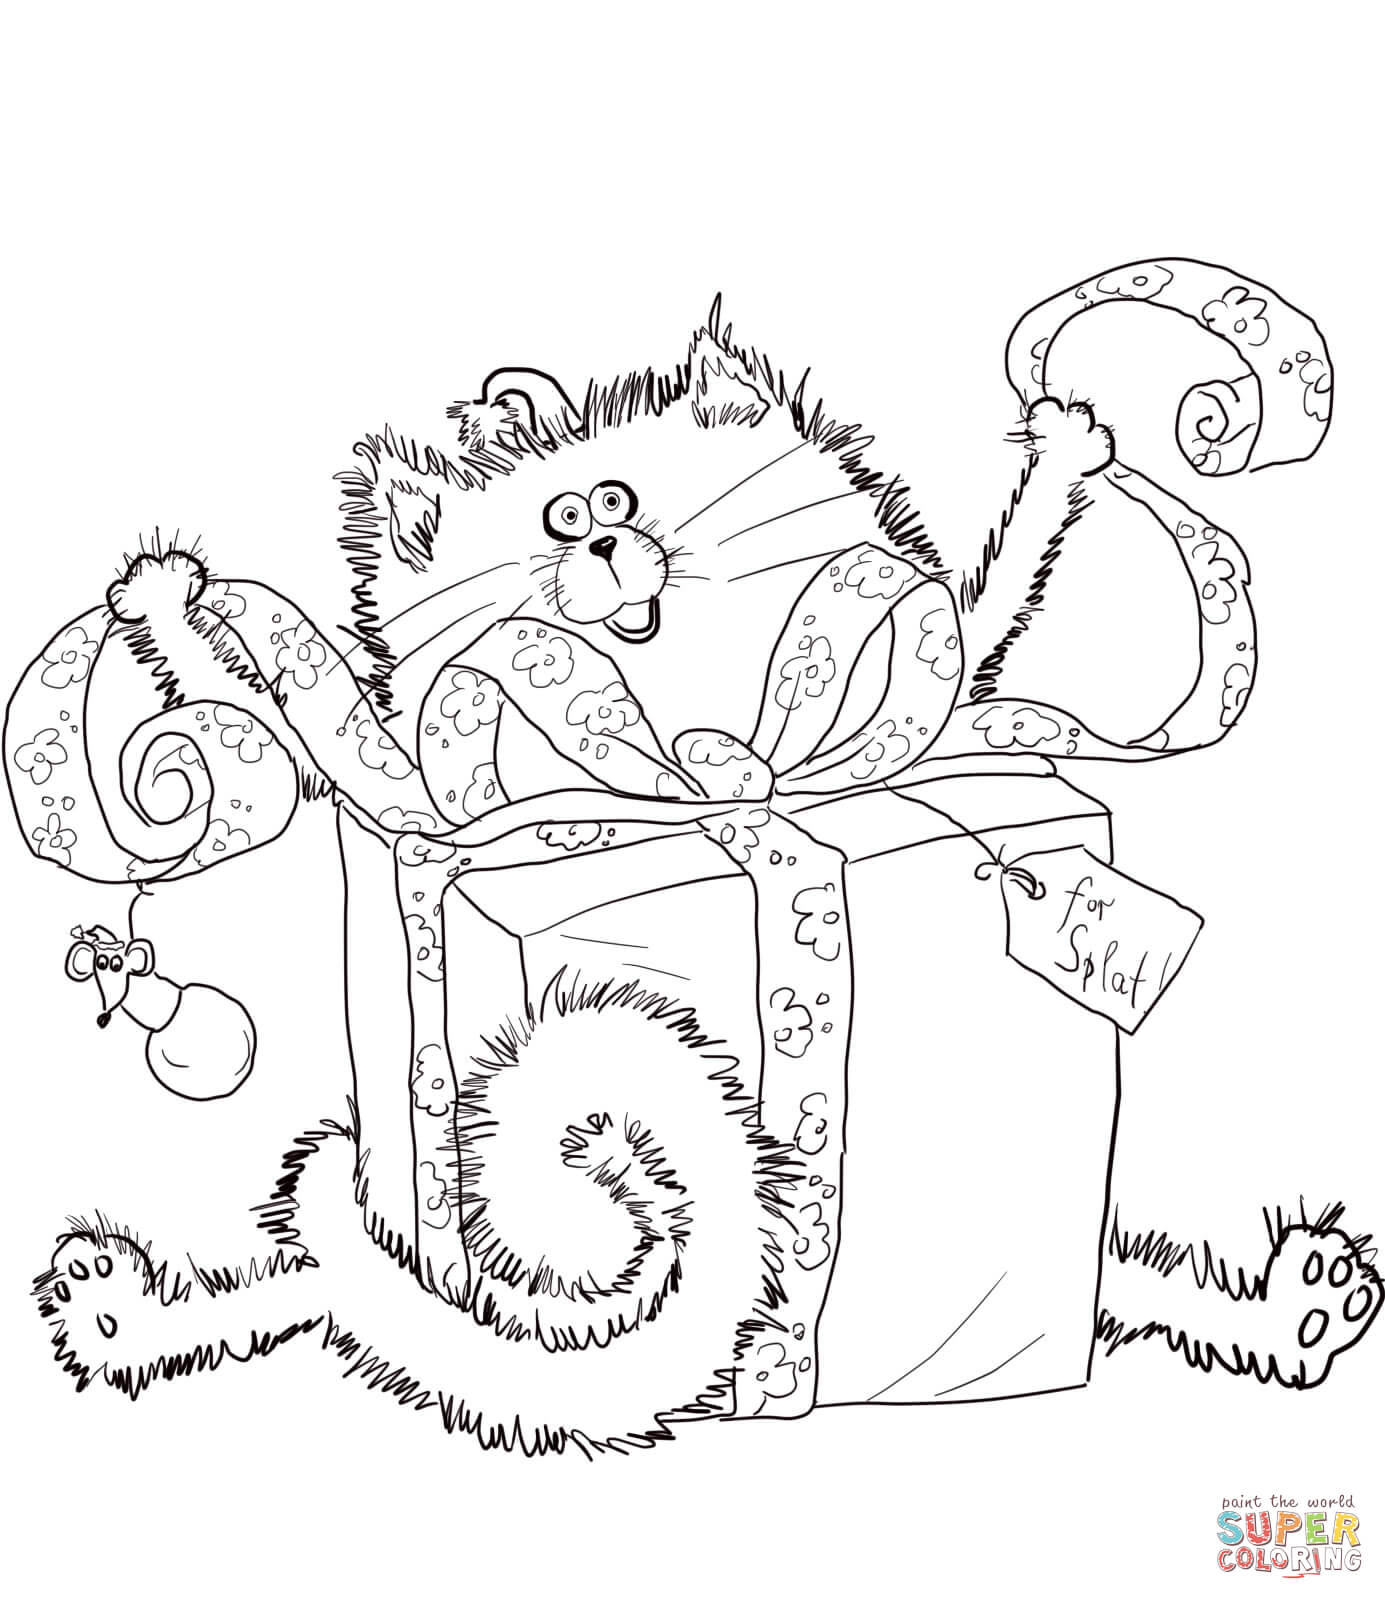 Merry Christmas Splat Coloring Pages With Page Free Printable